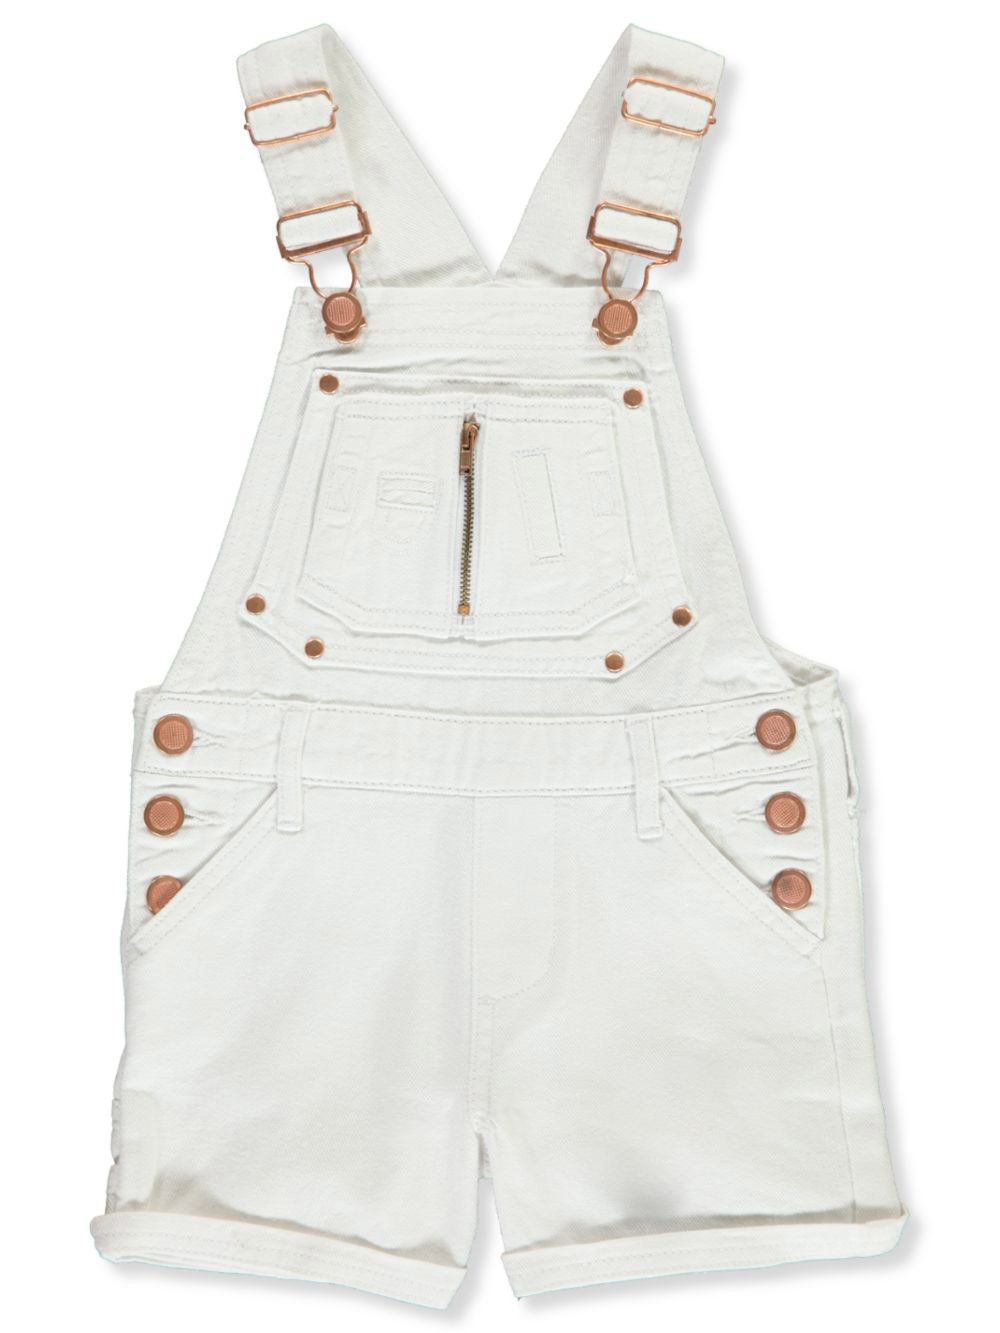 Size 5 Overalls Jumpers for Girls